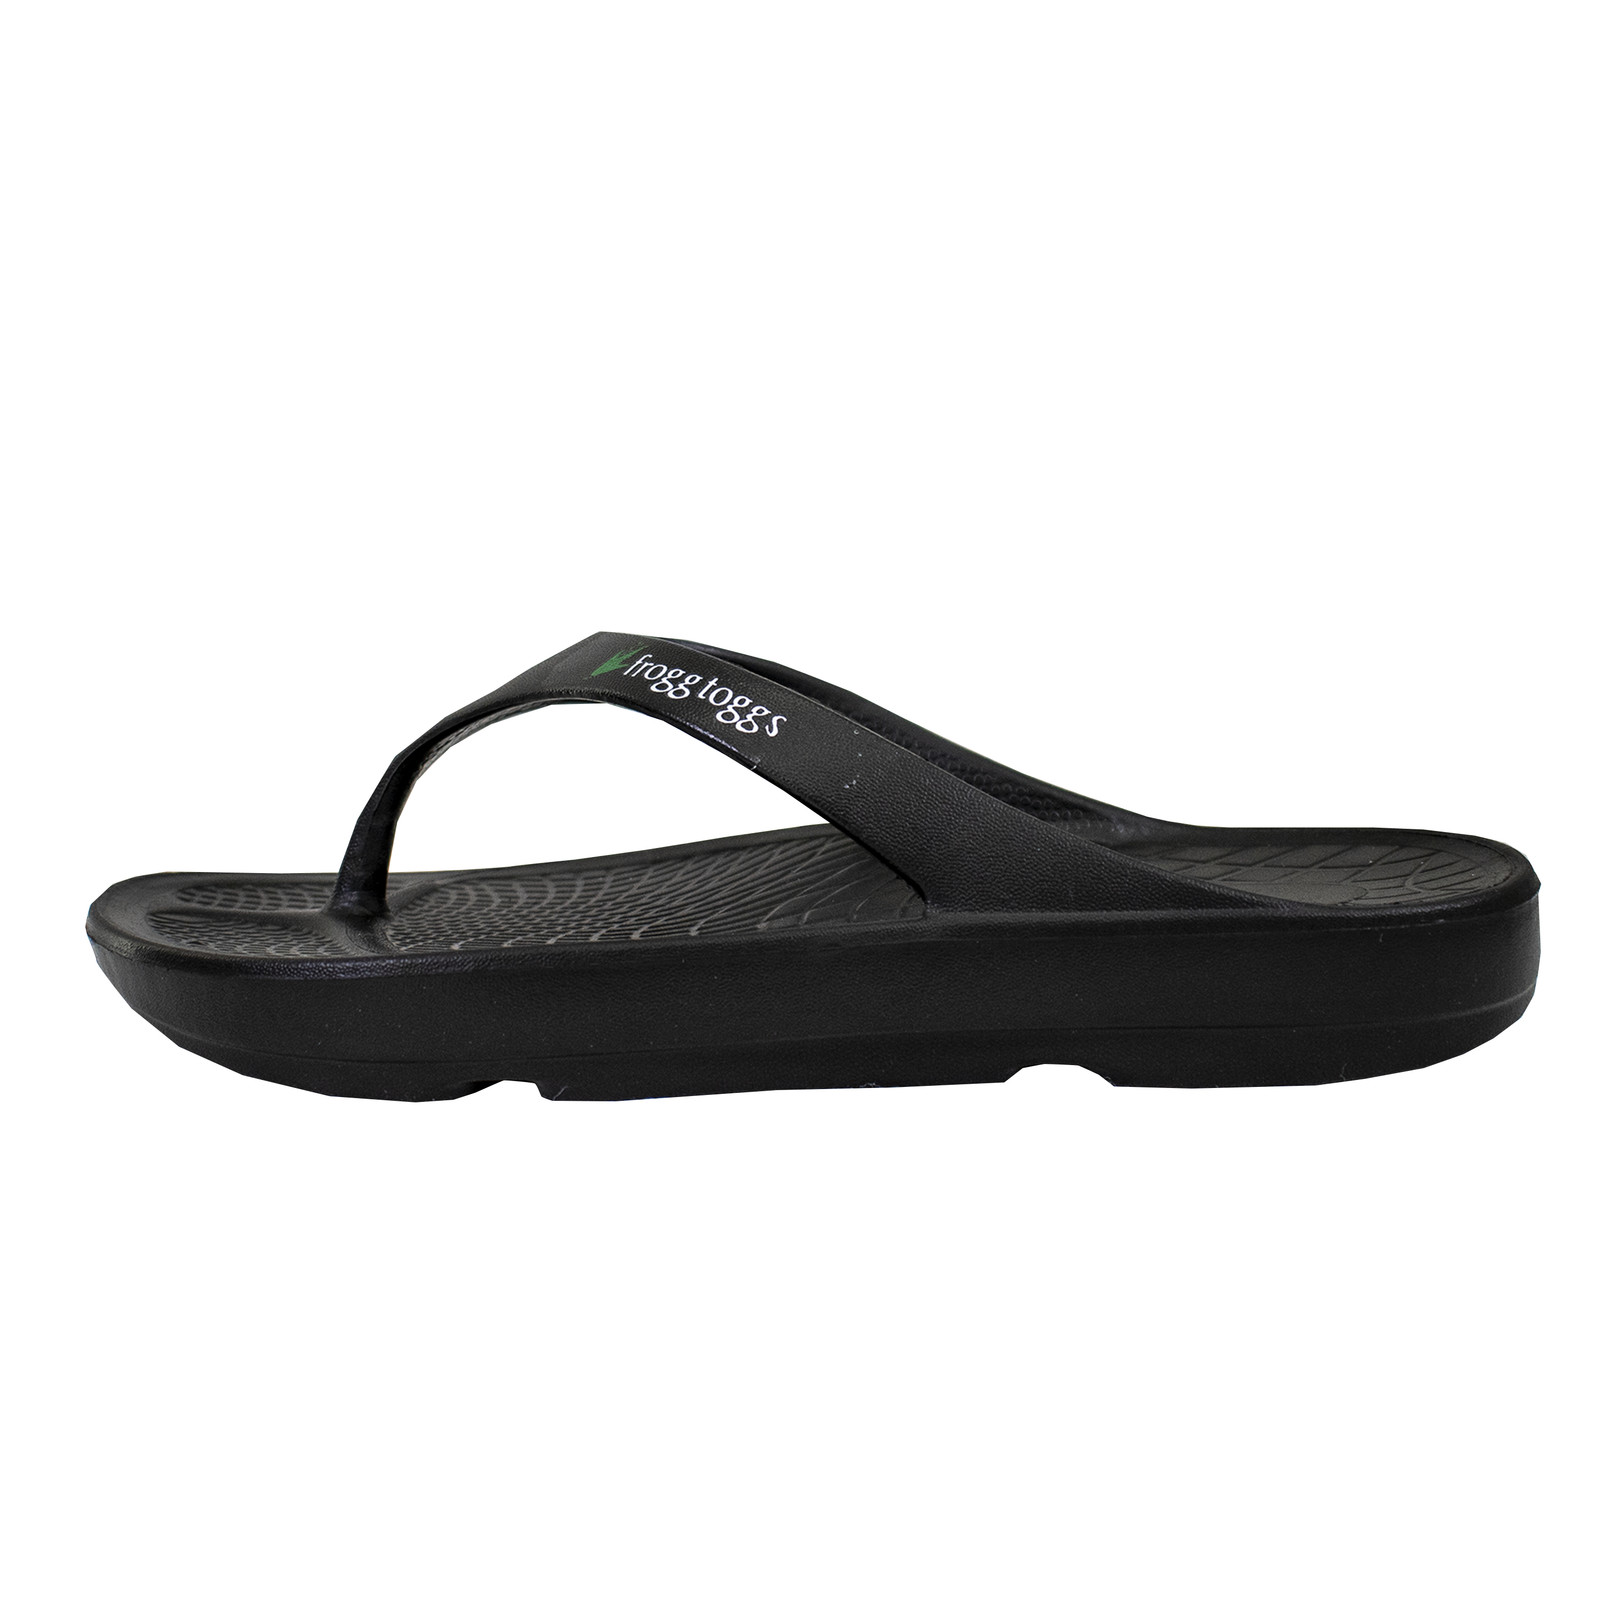 Up and Away Sandal-large